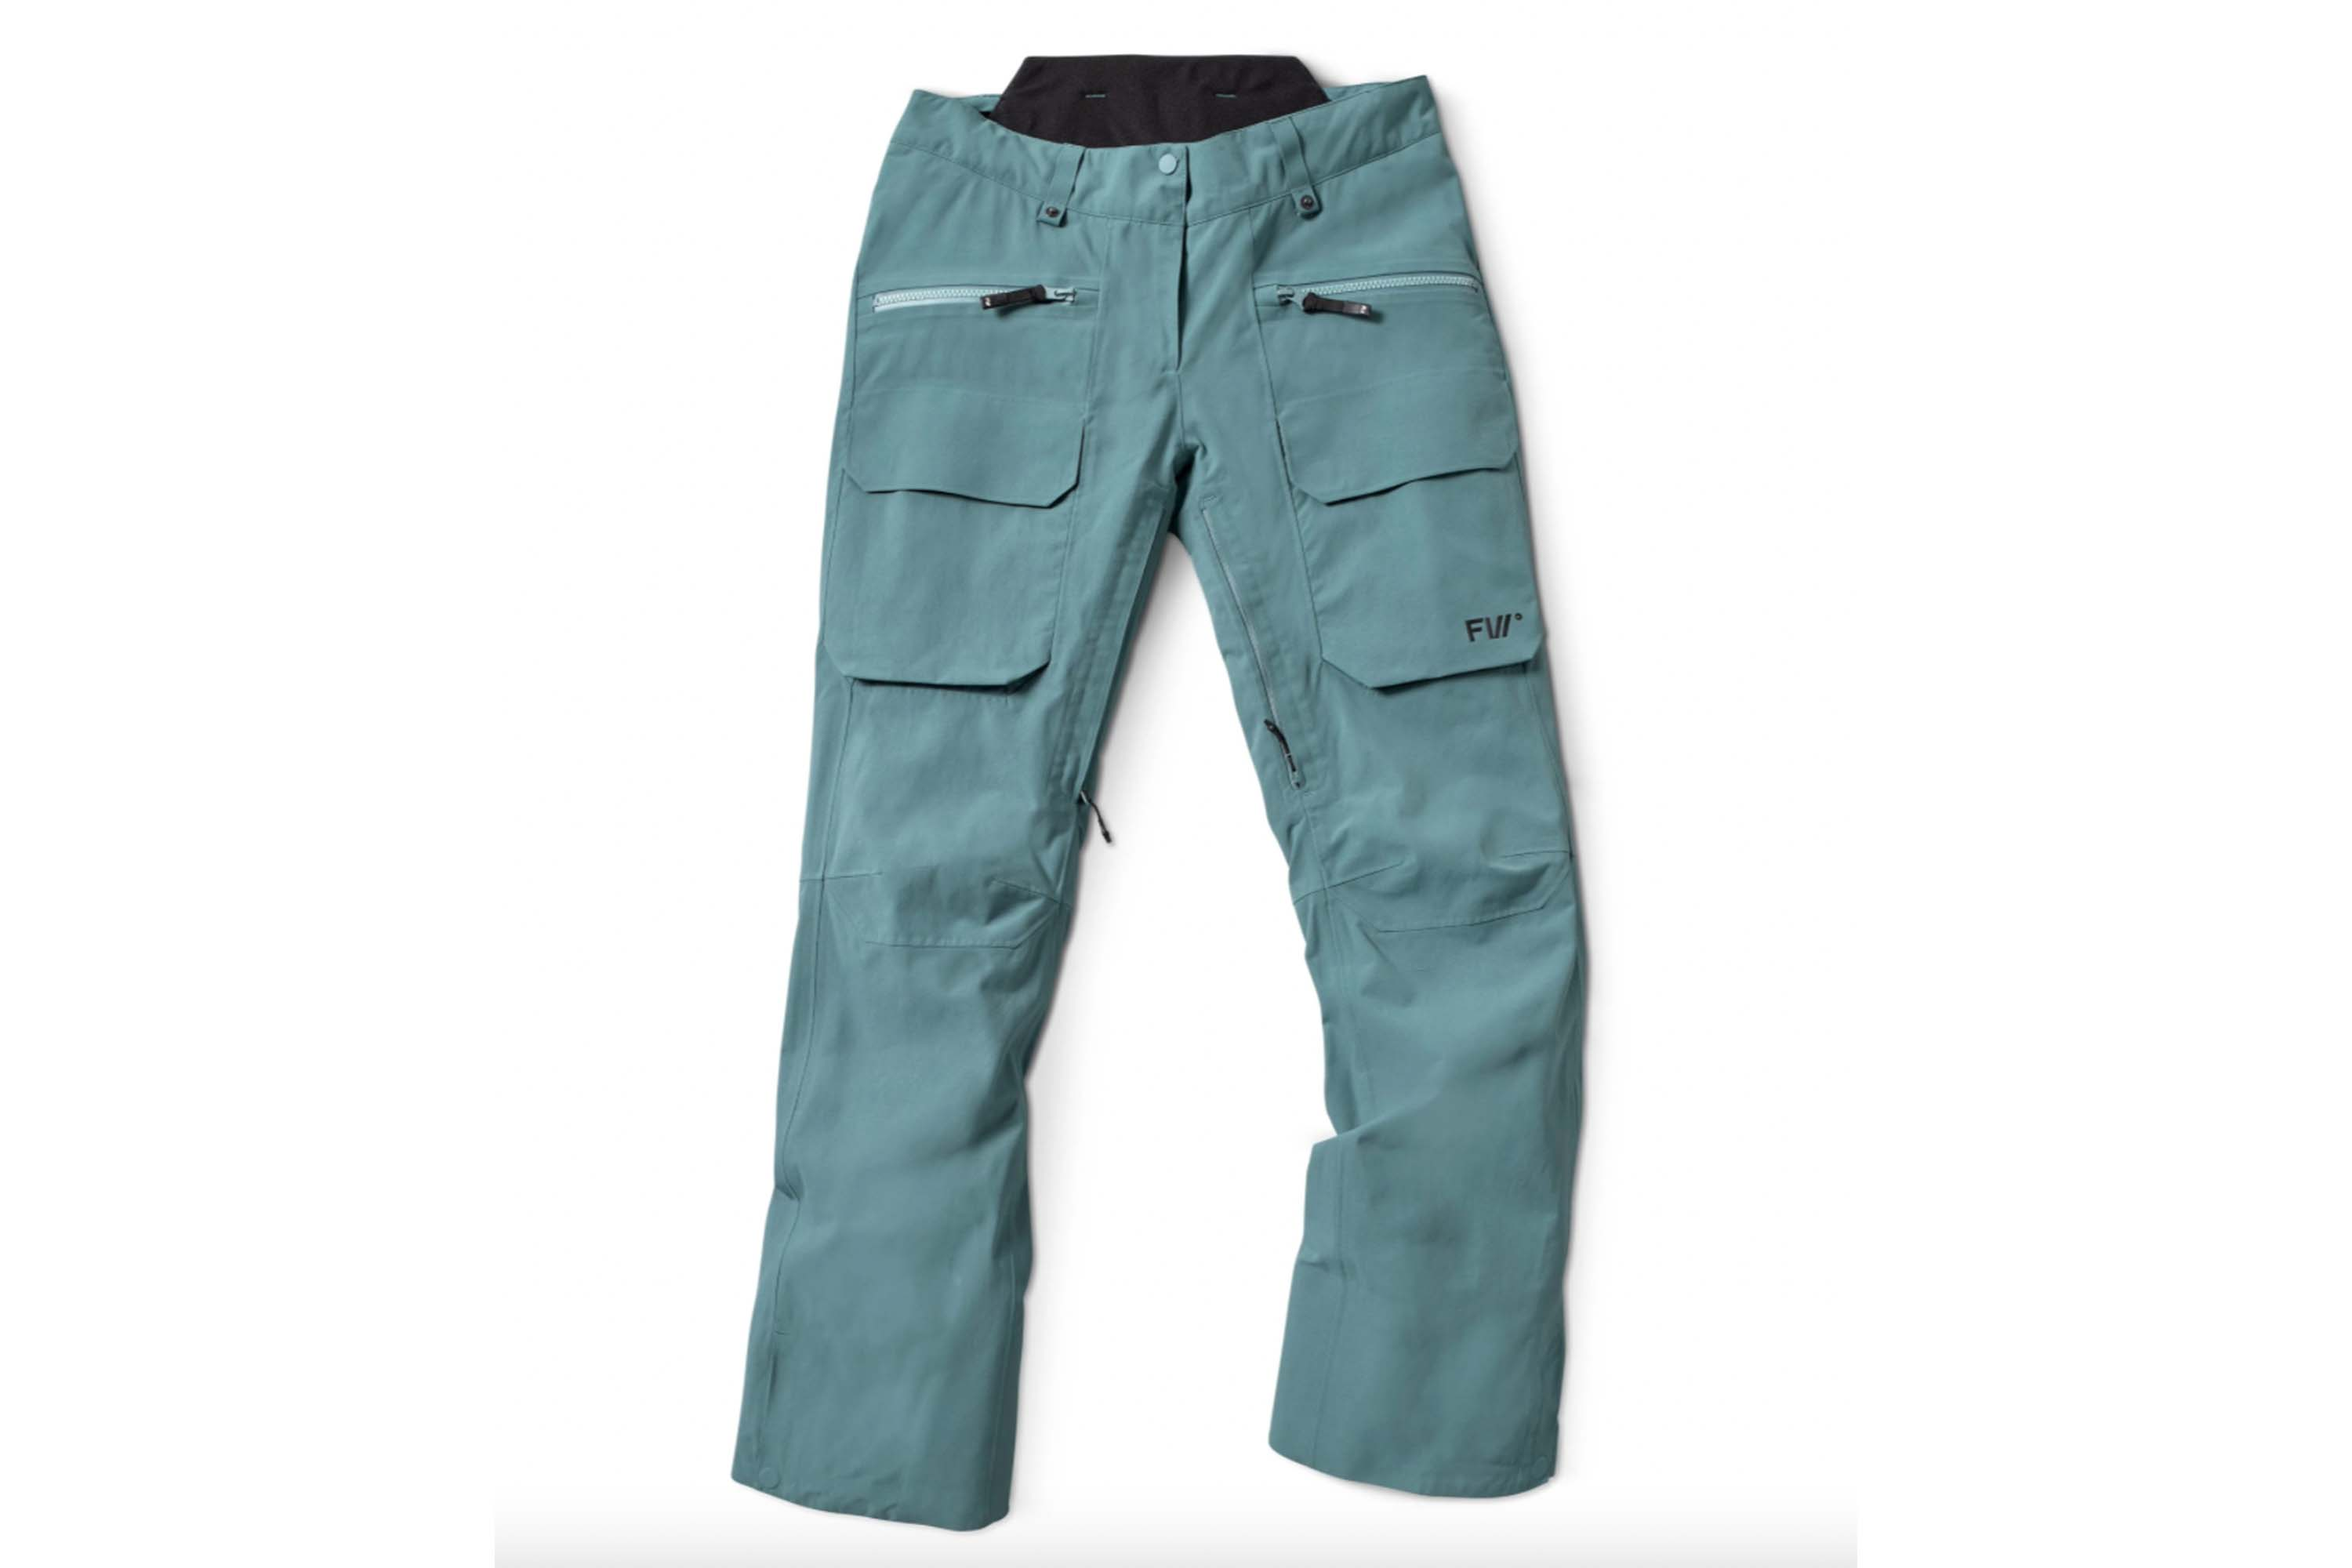 FW catalyst 2-layer ski pants in muted teal with 4 cargo pockets on the front